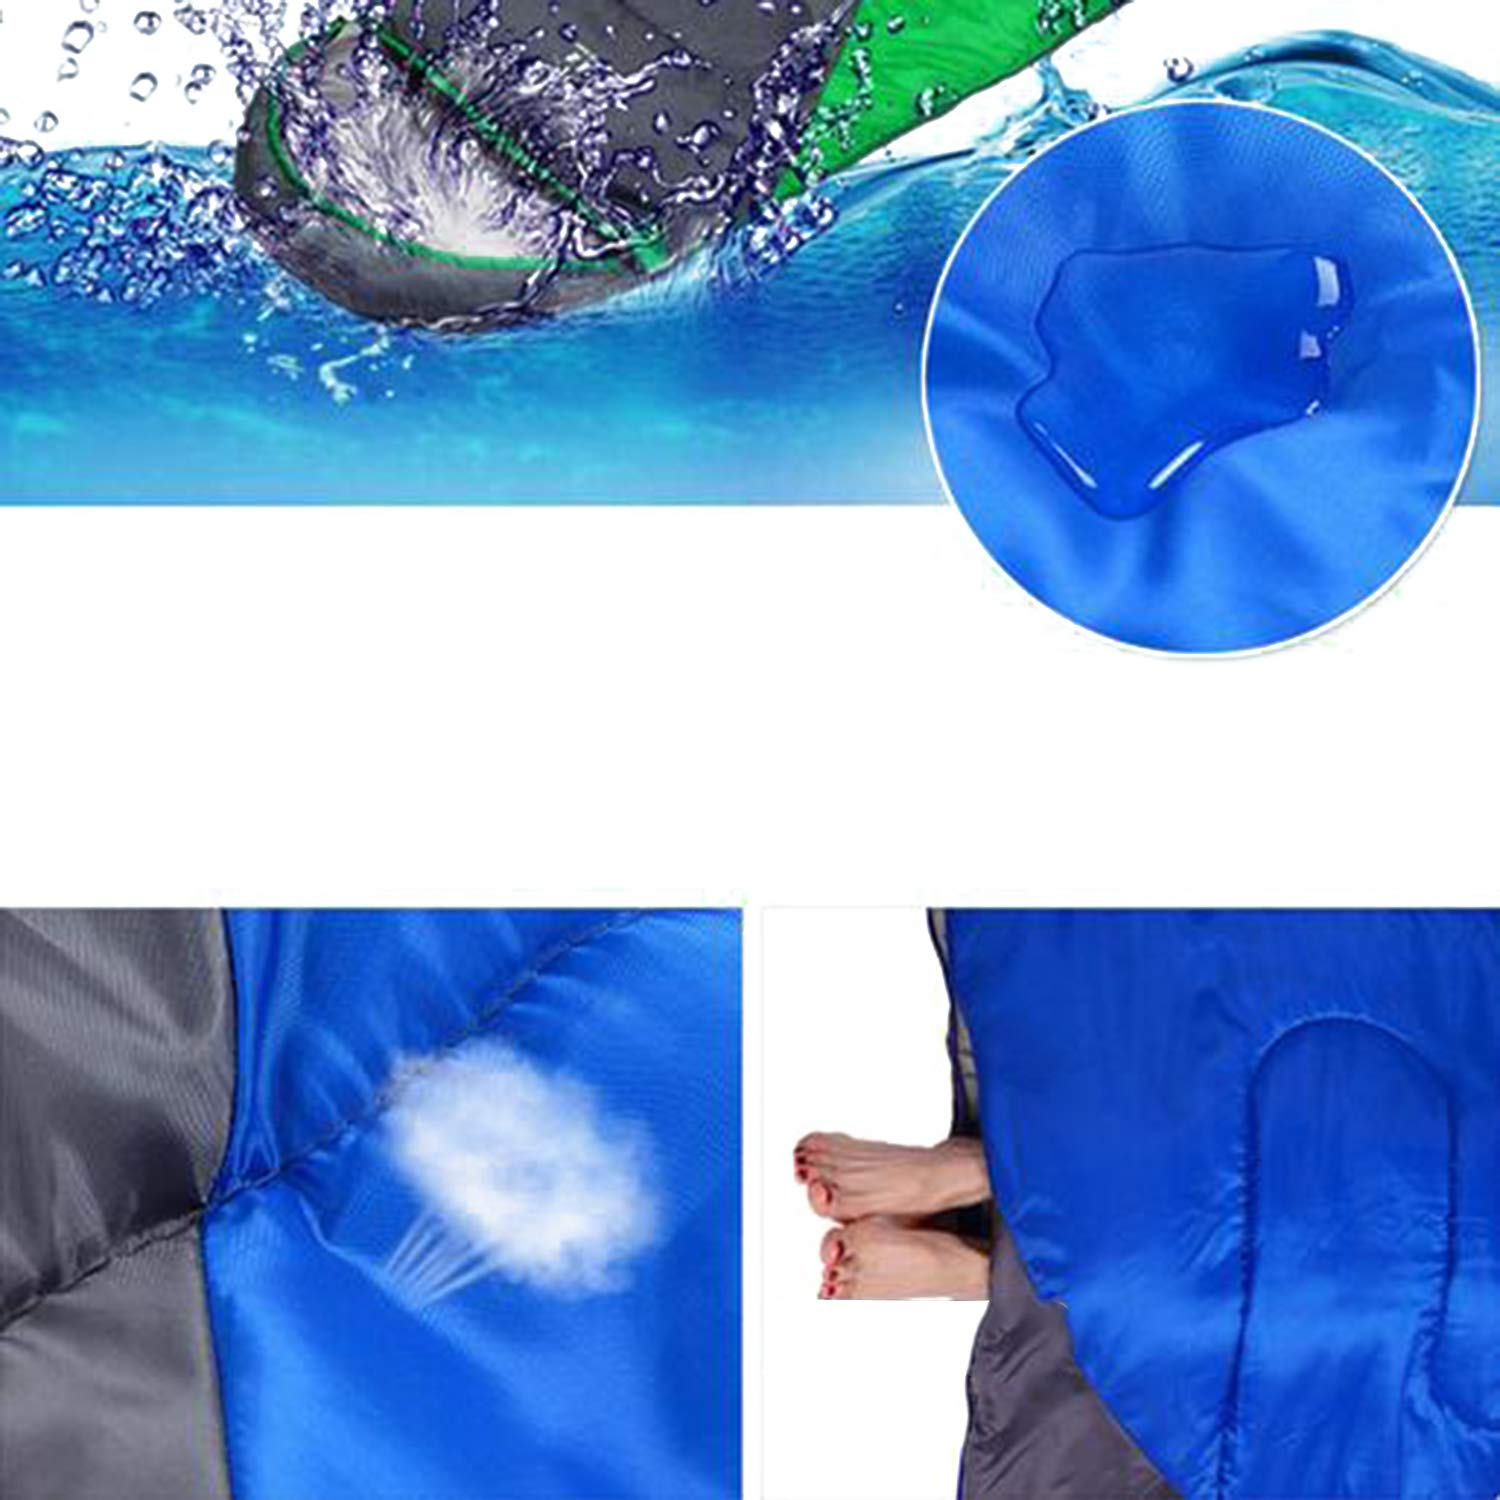 Frühling/Winter Warm Camping Schlafsack Waterproof Super Light Mittagspause Büro LNYF-OV Portable Cotton Schlafsack Outdoor Blau Größe: 220 * 75cm